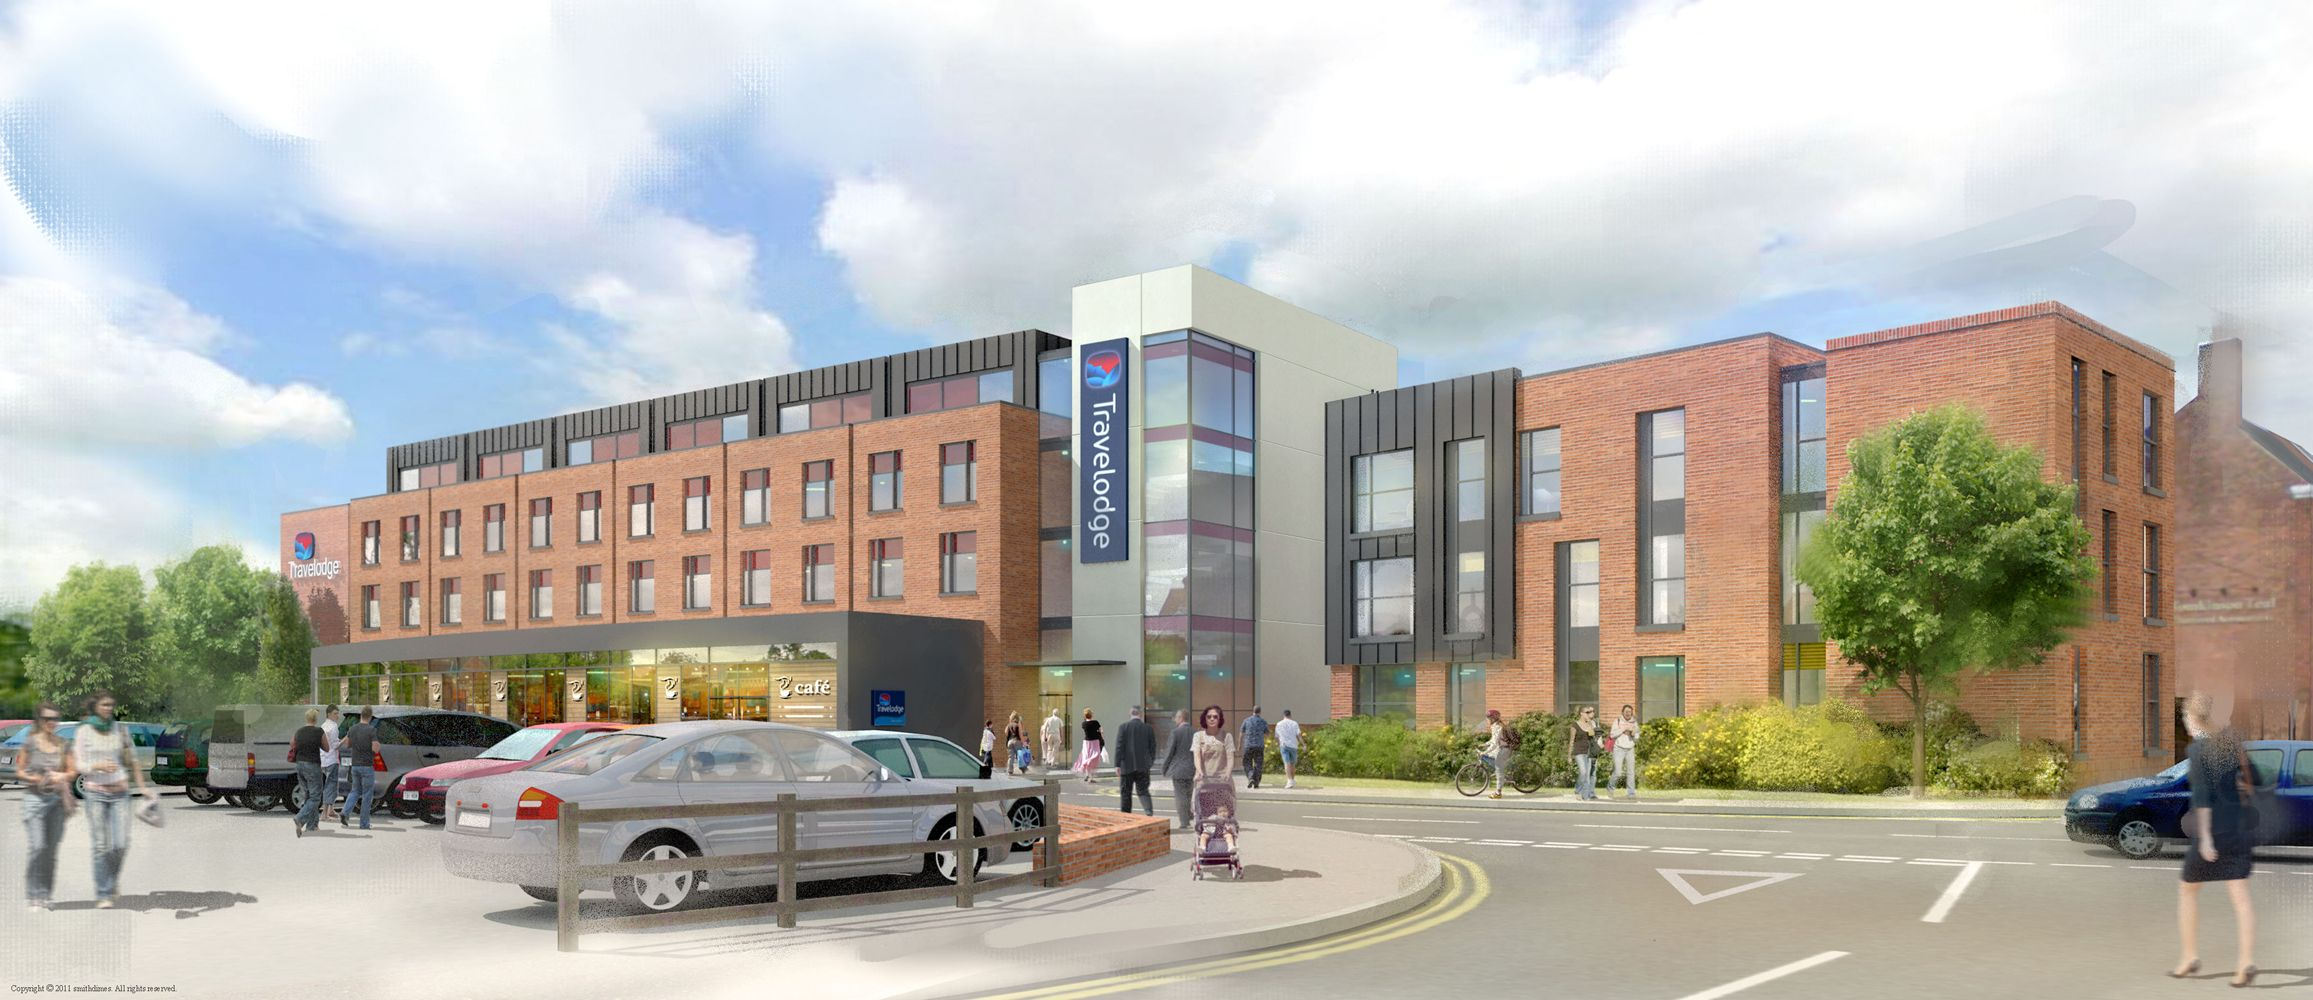 Affordable Housing Lichfield Venture Friary Outer Car Park S Harrison